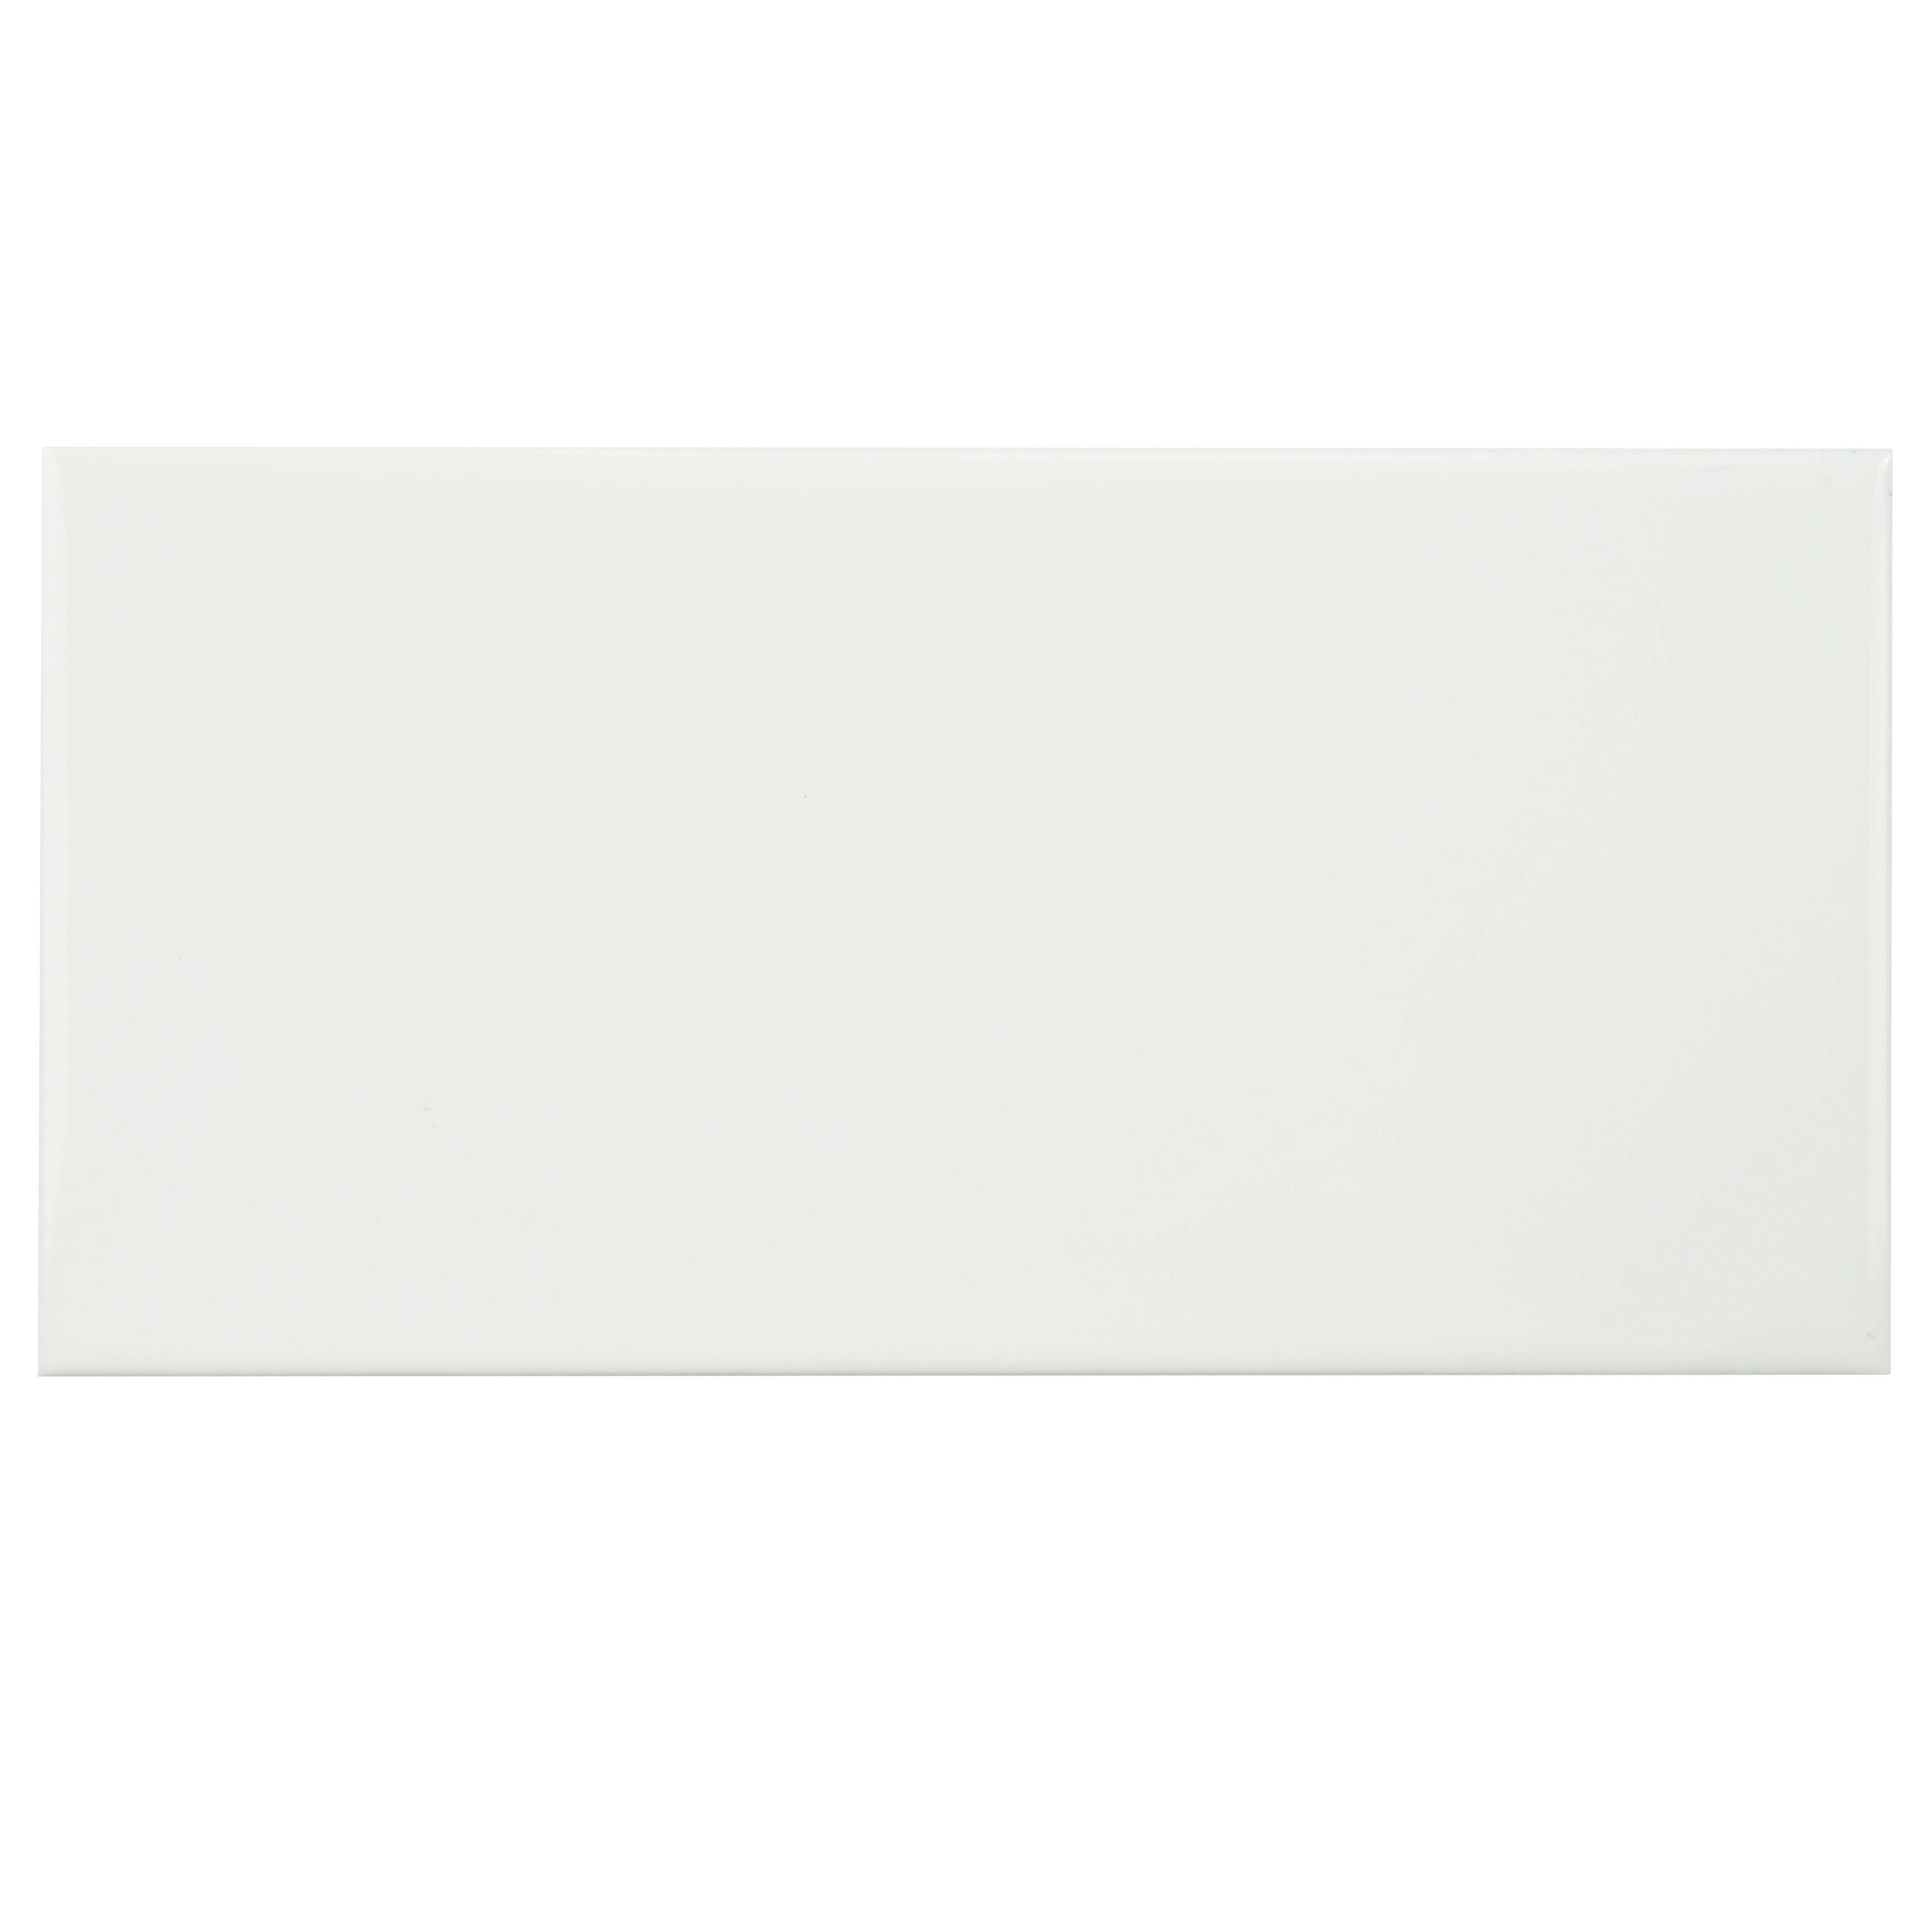 Elitetile prospect 3 x 6 ceramic subway tile in glazed white elitetile prospect 3 x 6 ceramic subway tile in glazed white reviews wayfair dailygadgetfo Image collections